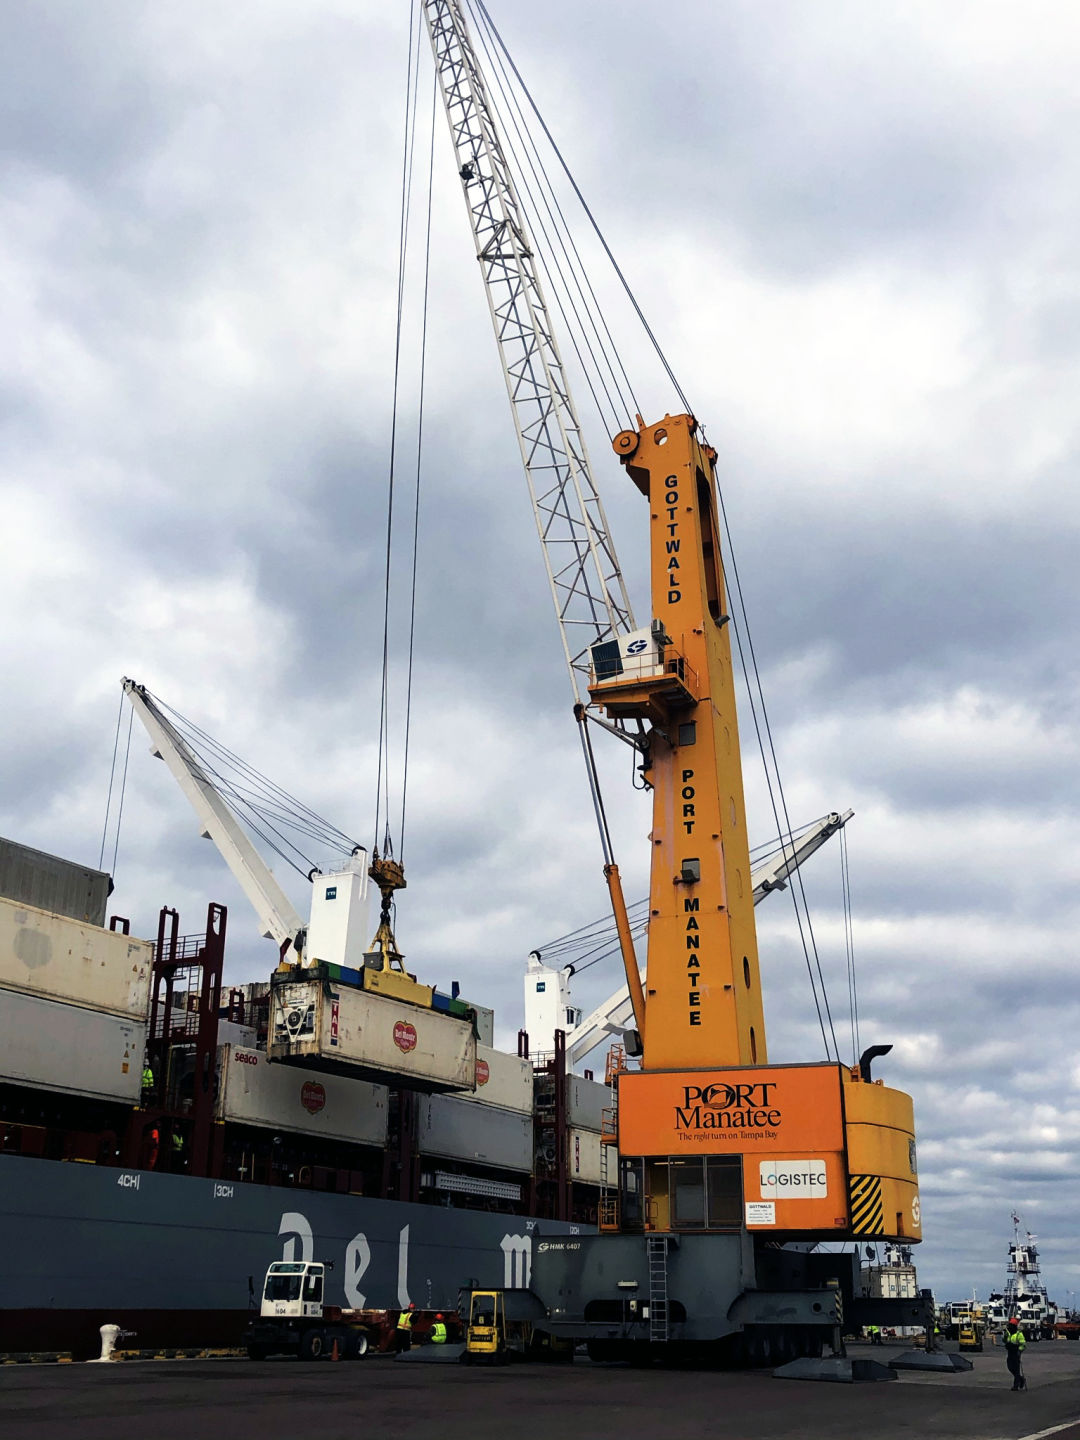 Containerized cargo trade is breaking records at Port Manatee, including via new-generation containerships being deployed by Fresh Del Monte Produce Inc.